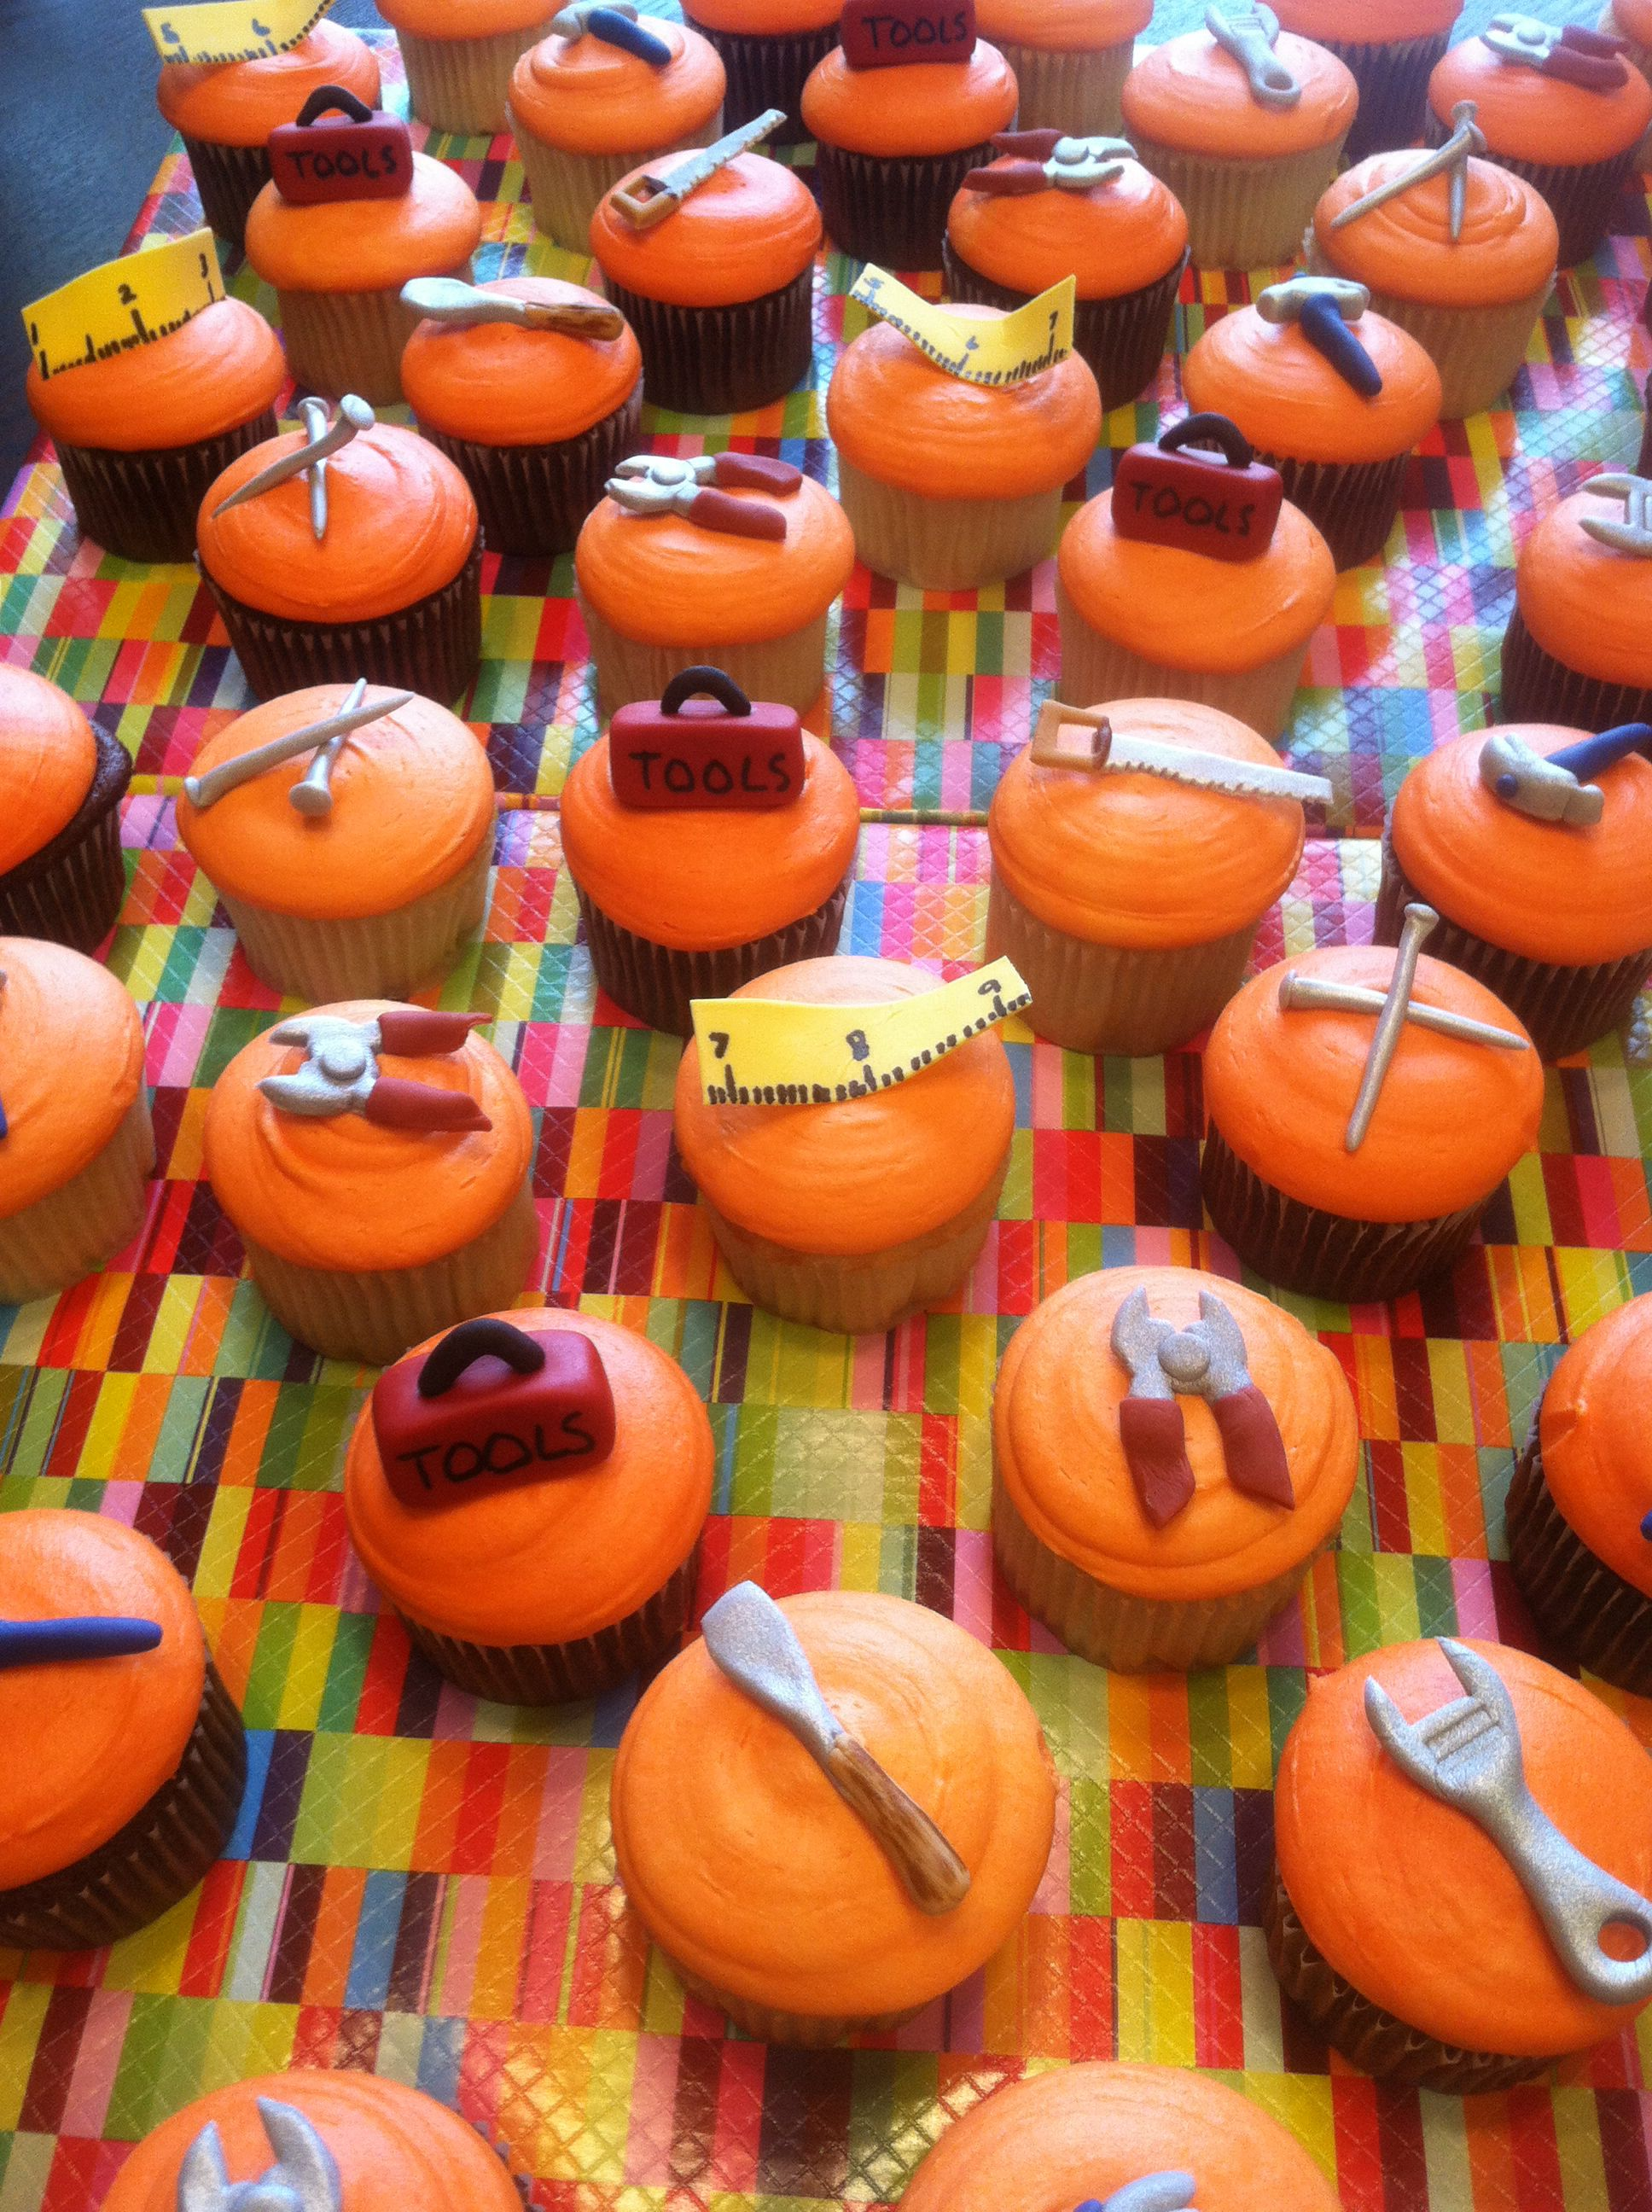 Home Depot Tool Themed Cupcakes My Cakes Pinterest